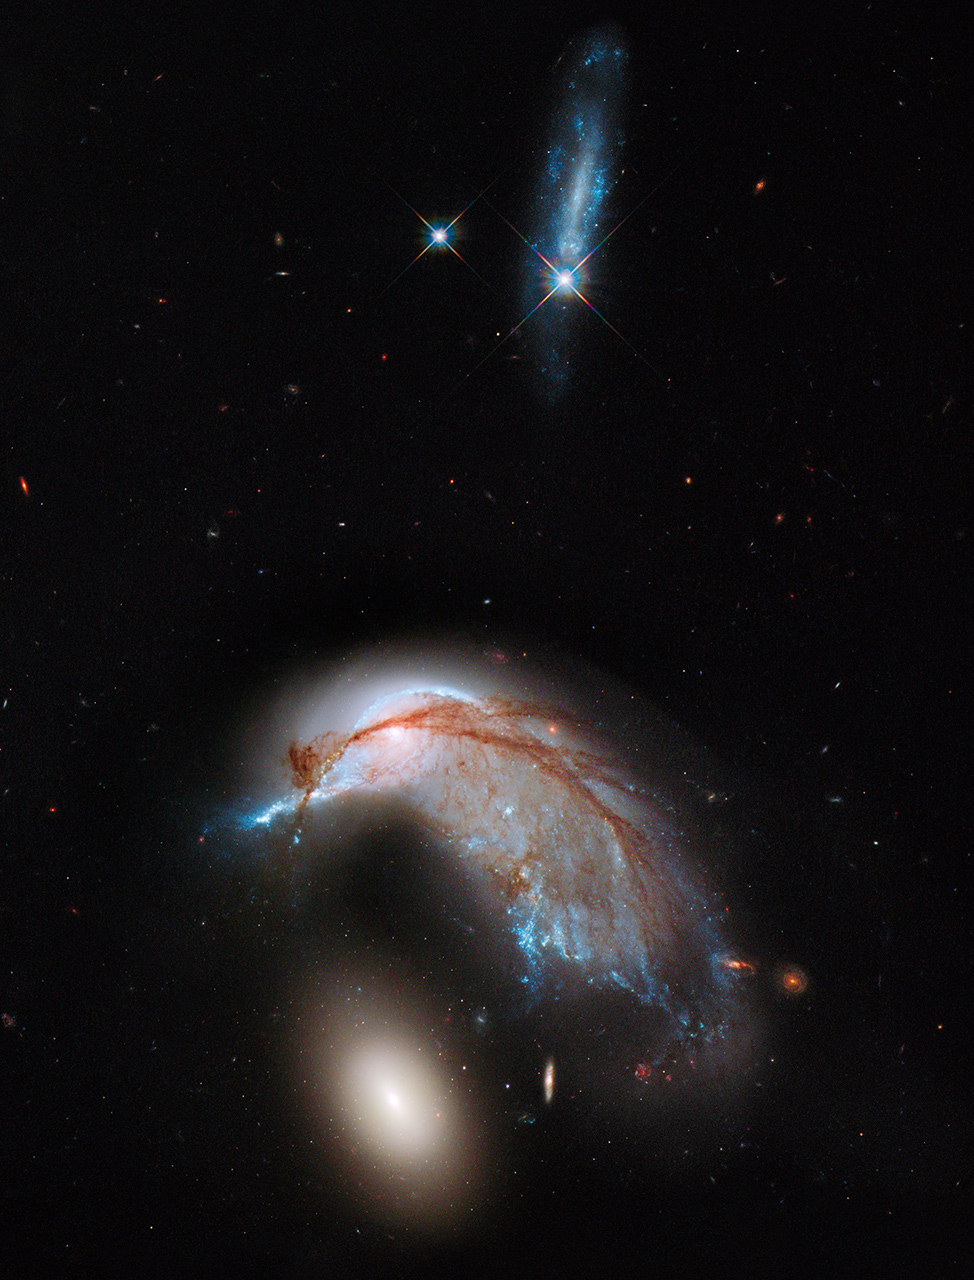 756581main_hubble_colliding_galaxies_full_full.jpg